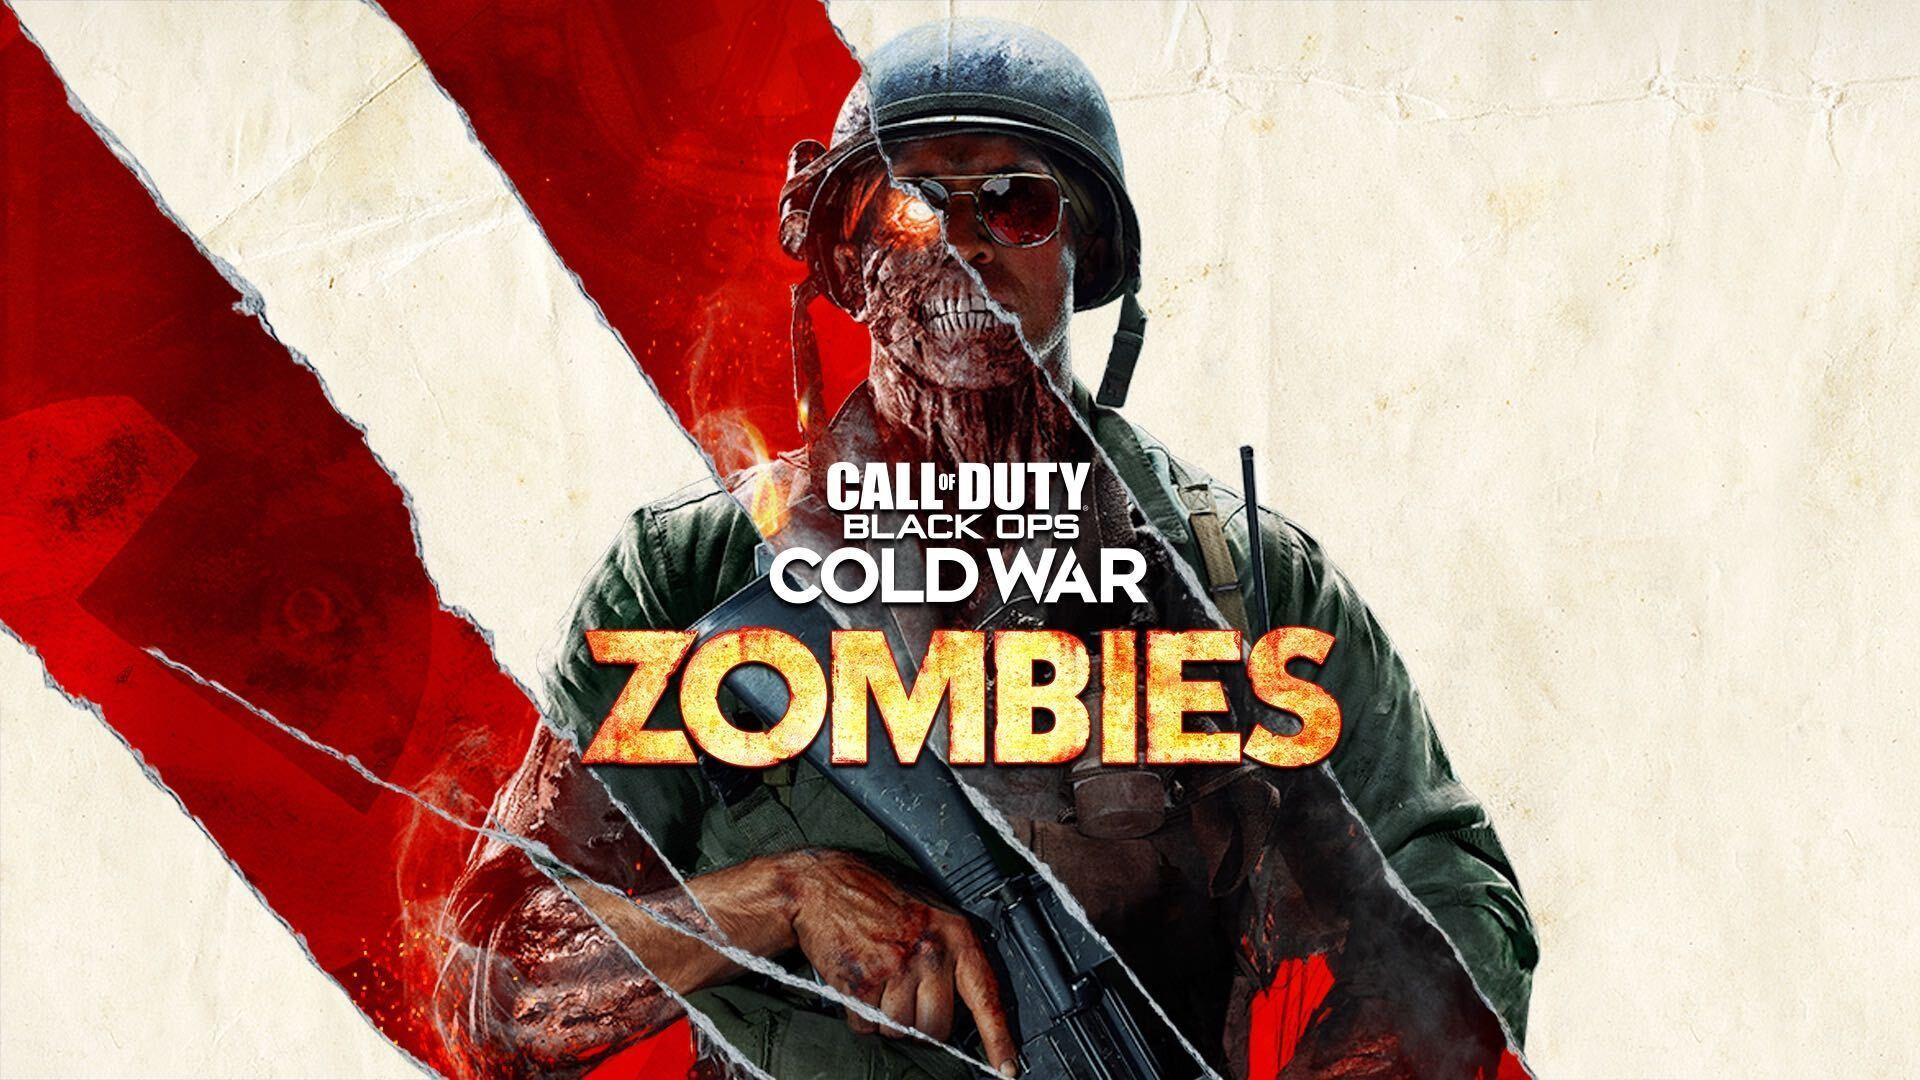 Call of Duty: Black Ops Cold War will show off Zombies on September 30 screenshot